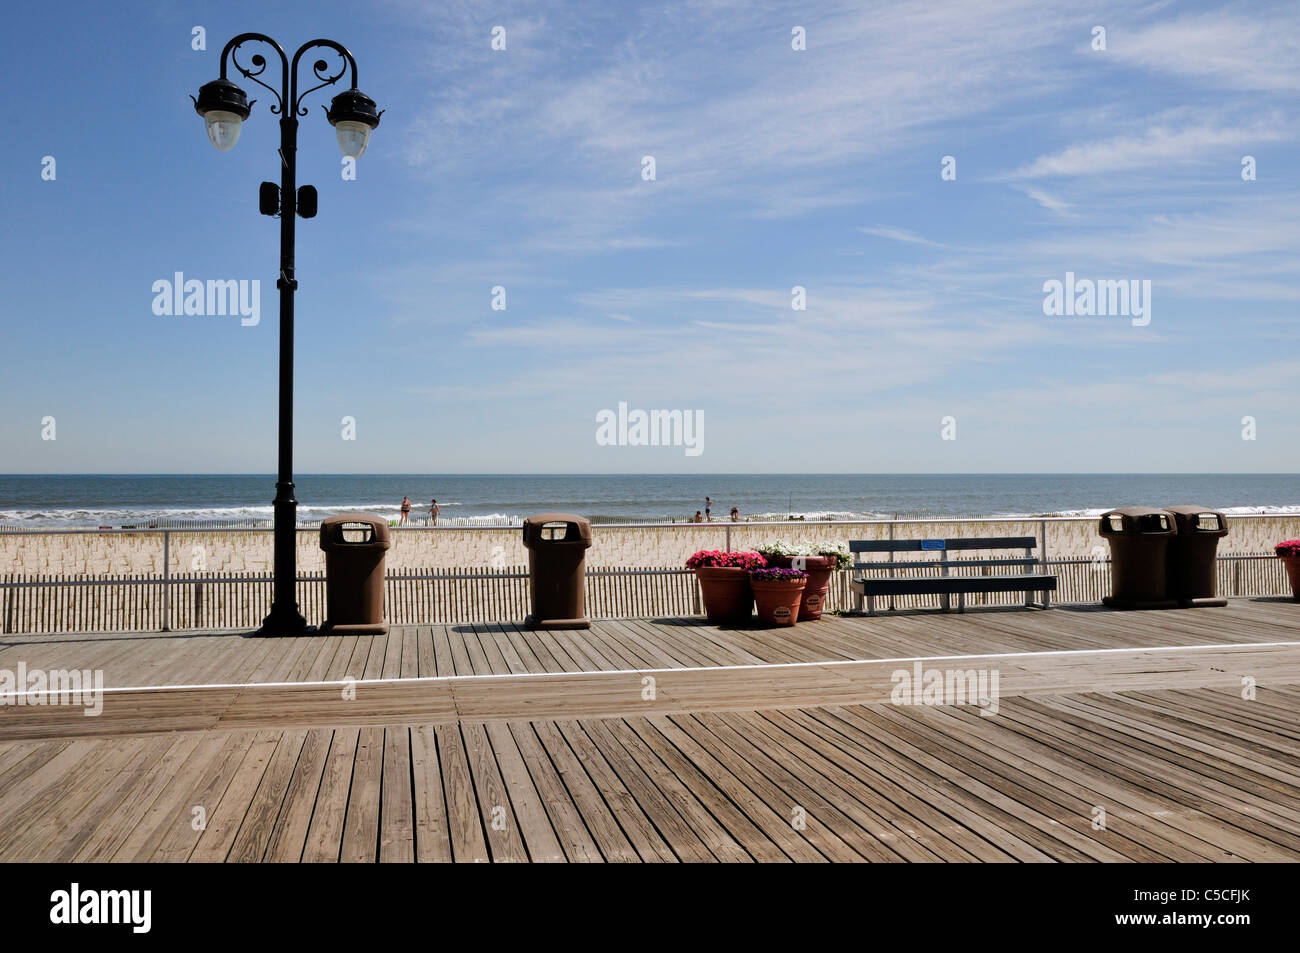 The boardwalk at Ocean City, New Jersey - Stock Image